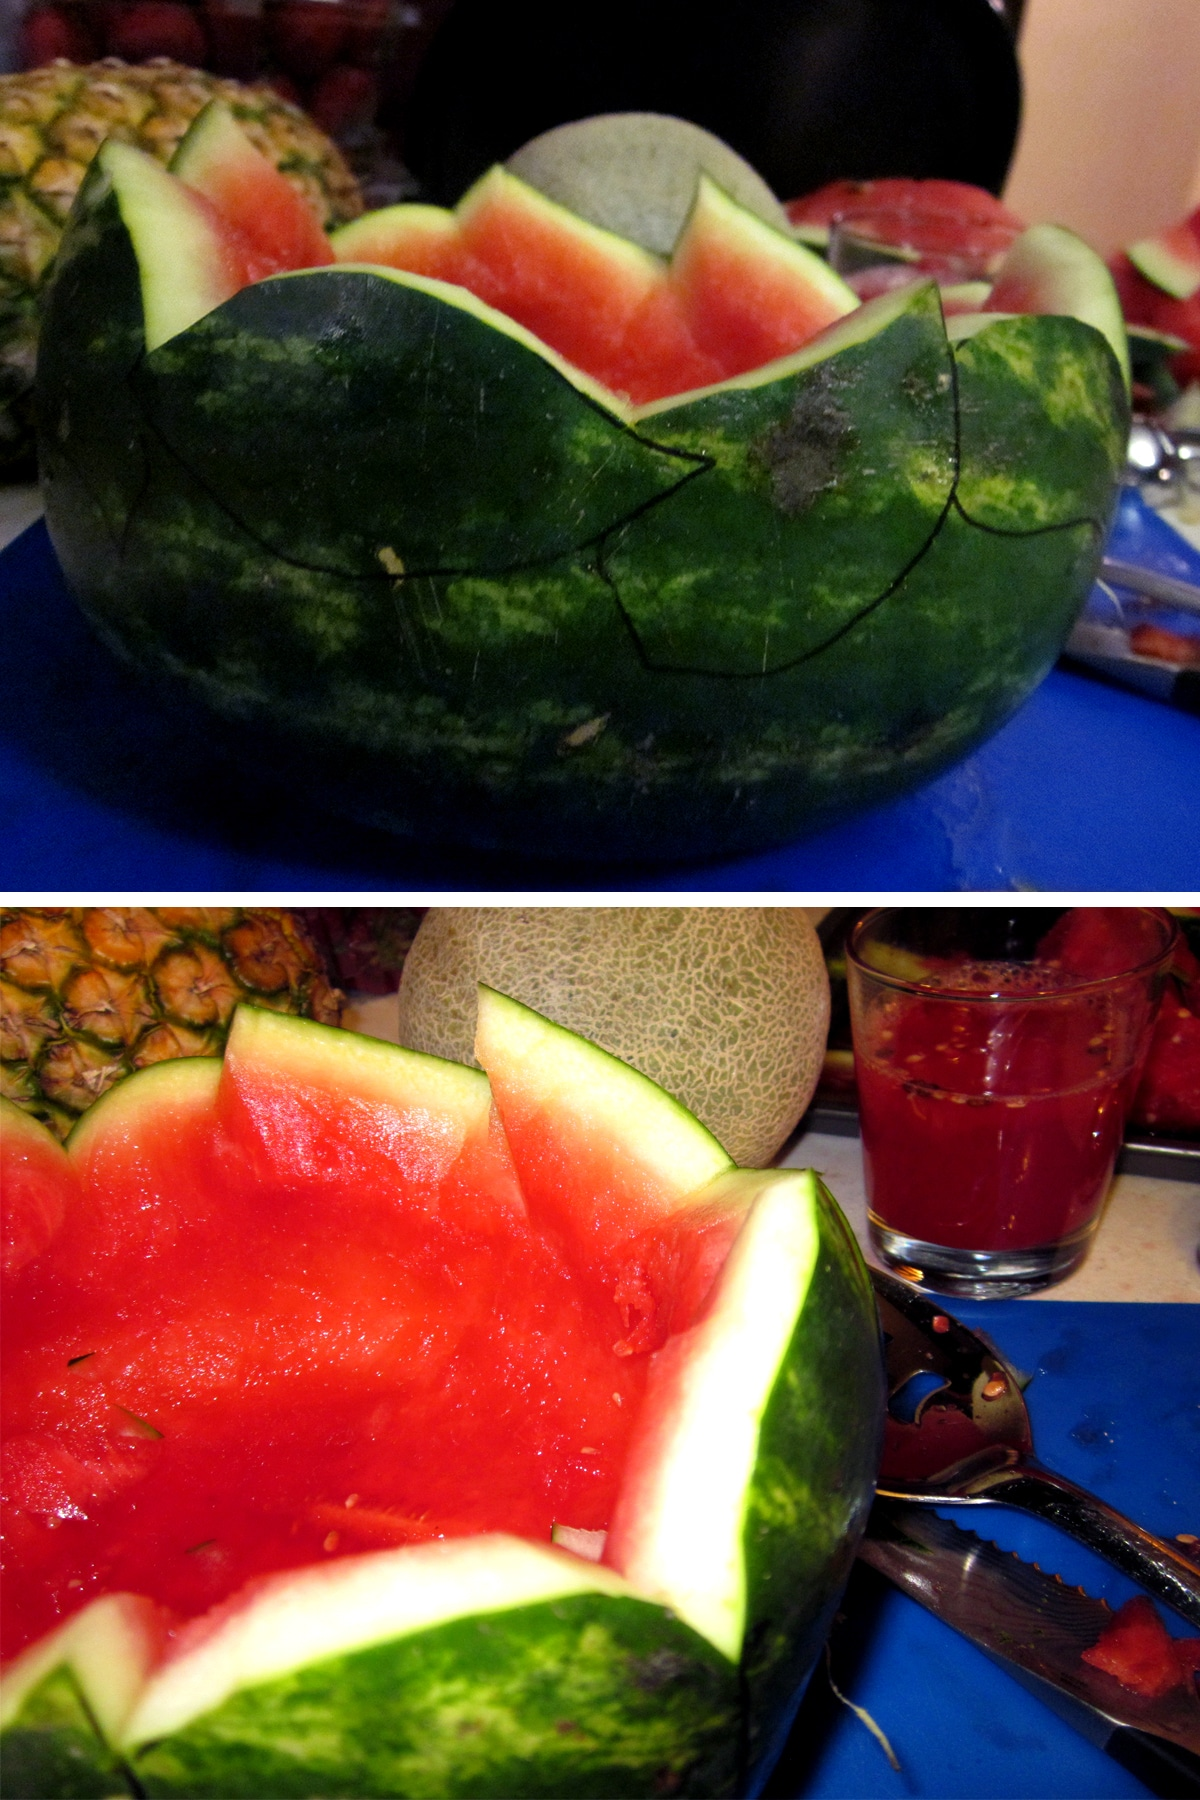 A close up view of the leaf design around the top edge of the watermelon.